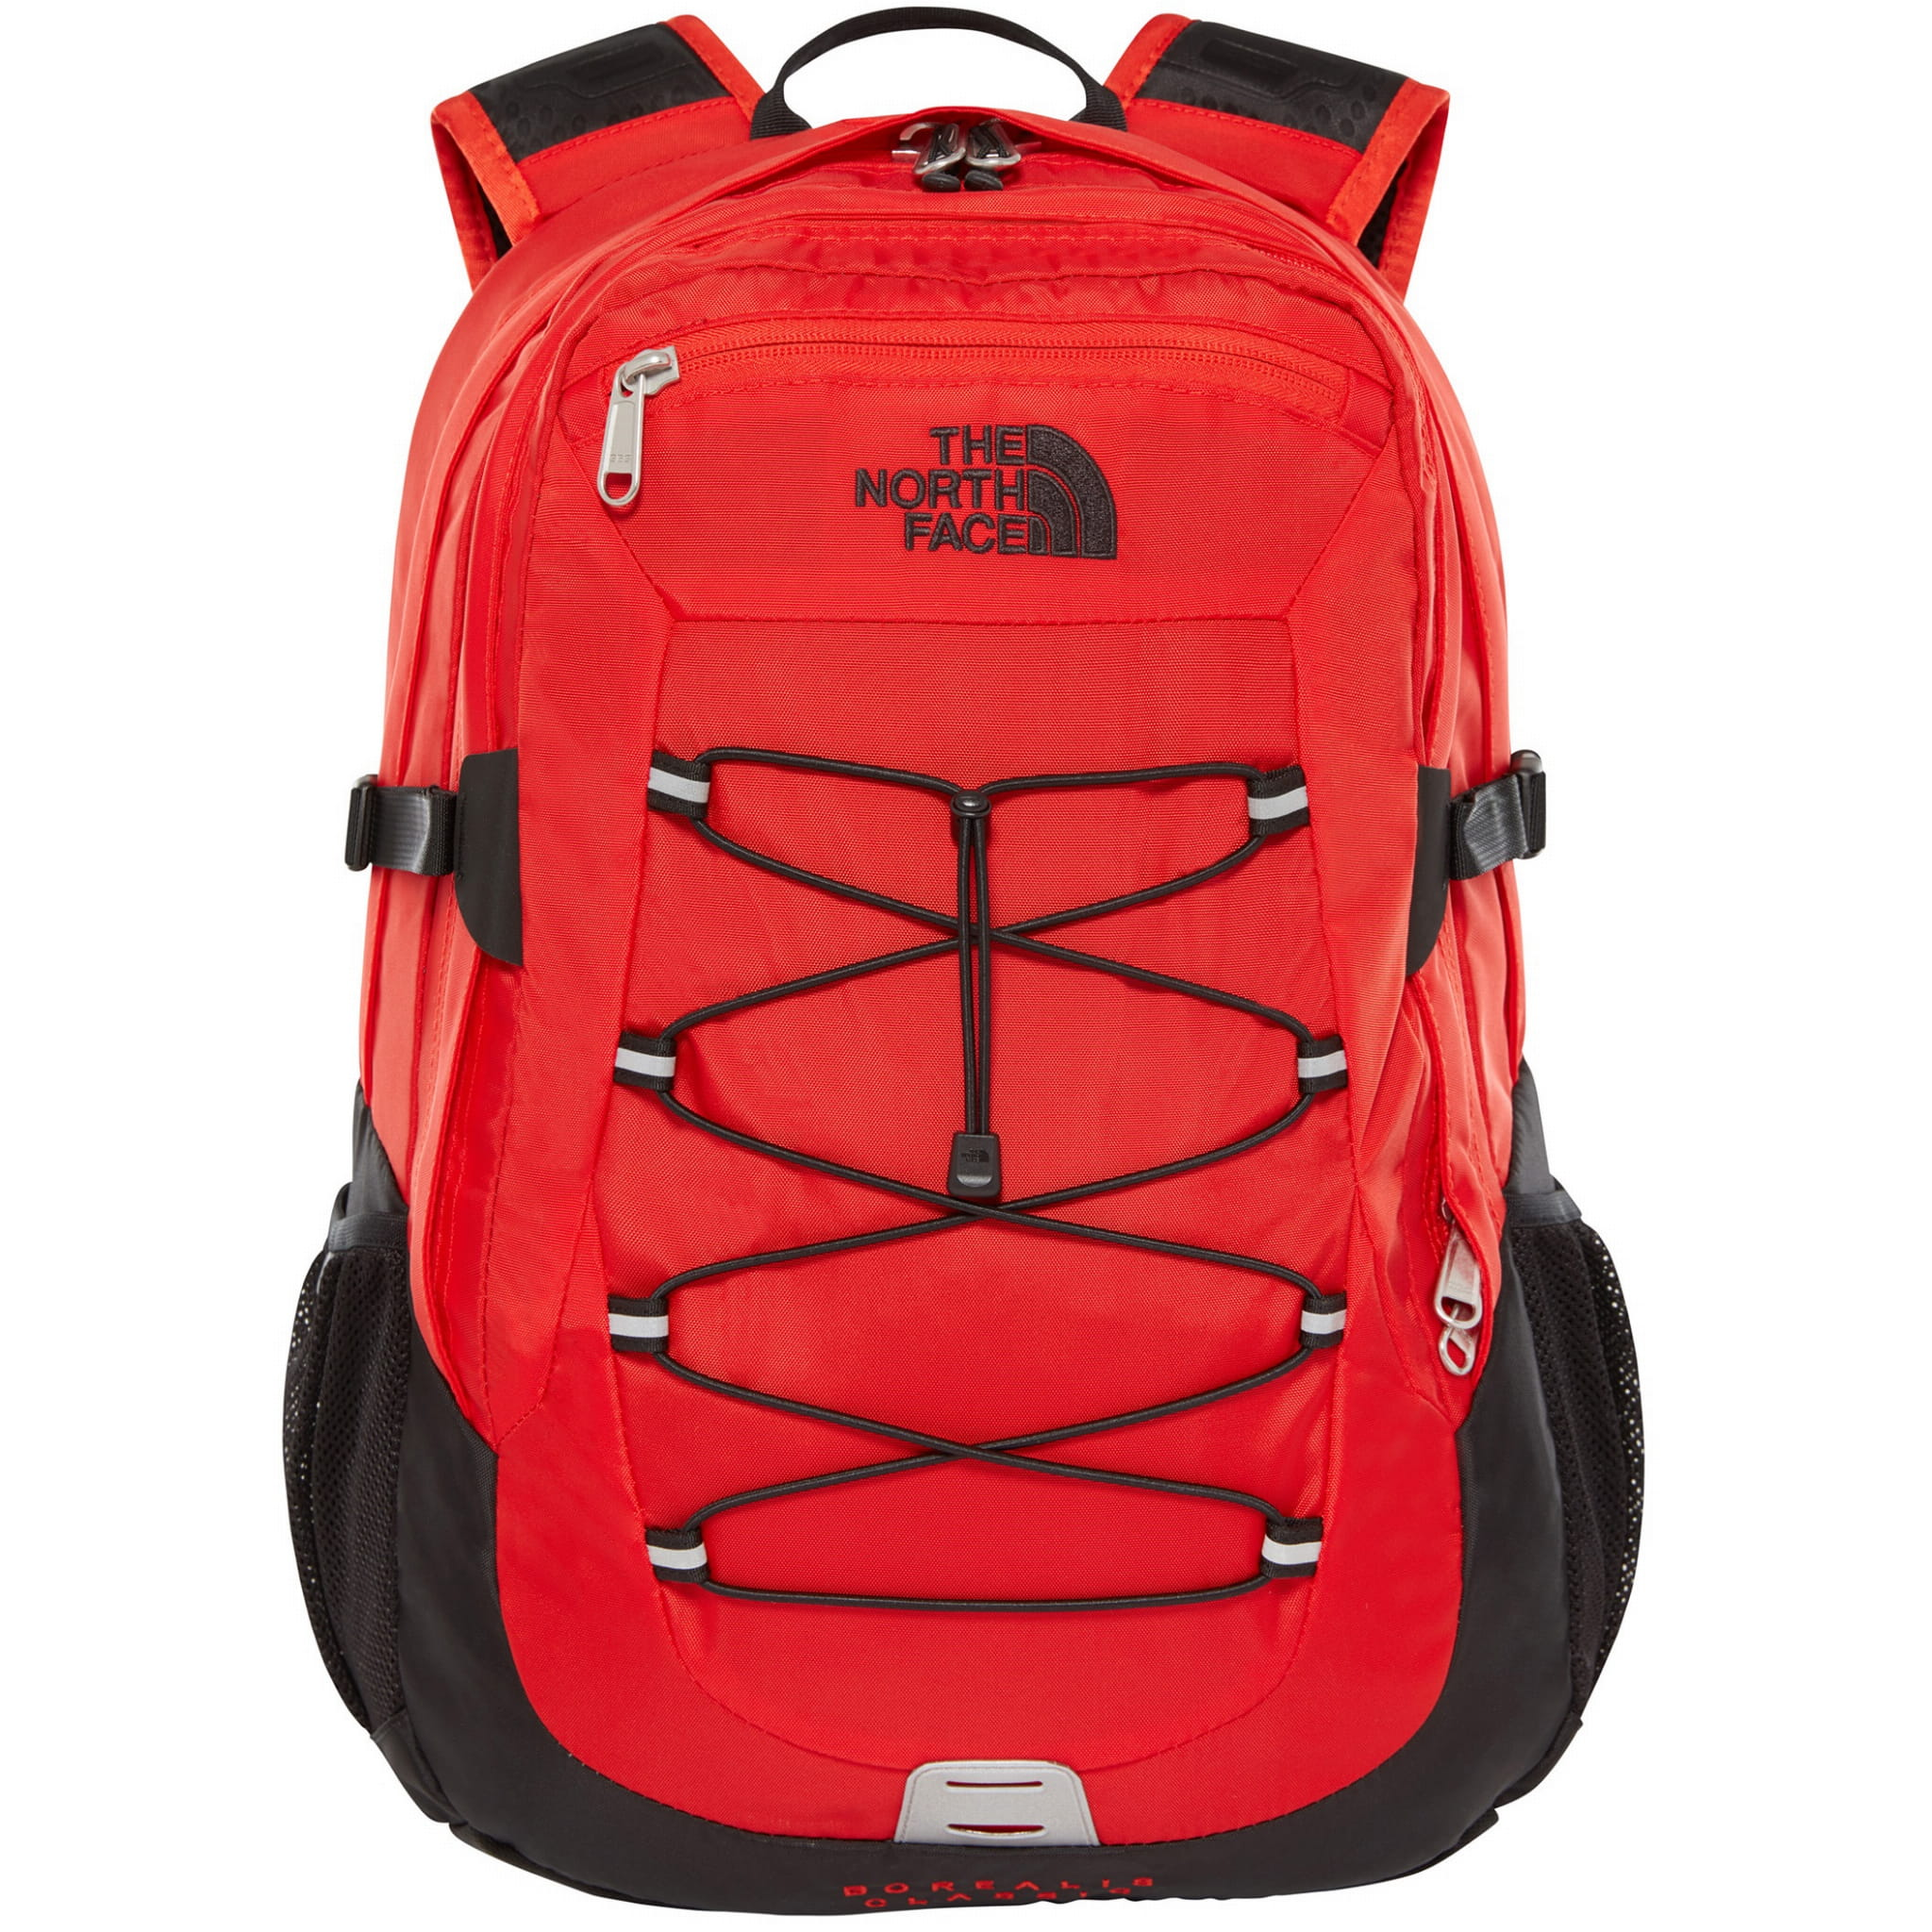 9f161d7d5cb6a Plecak The North Face Borealis Classic - Fiery Red / TNF Black 29L w ...